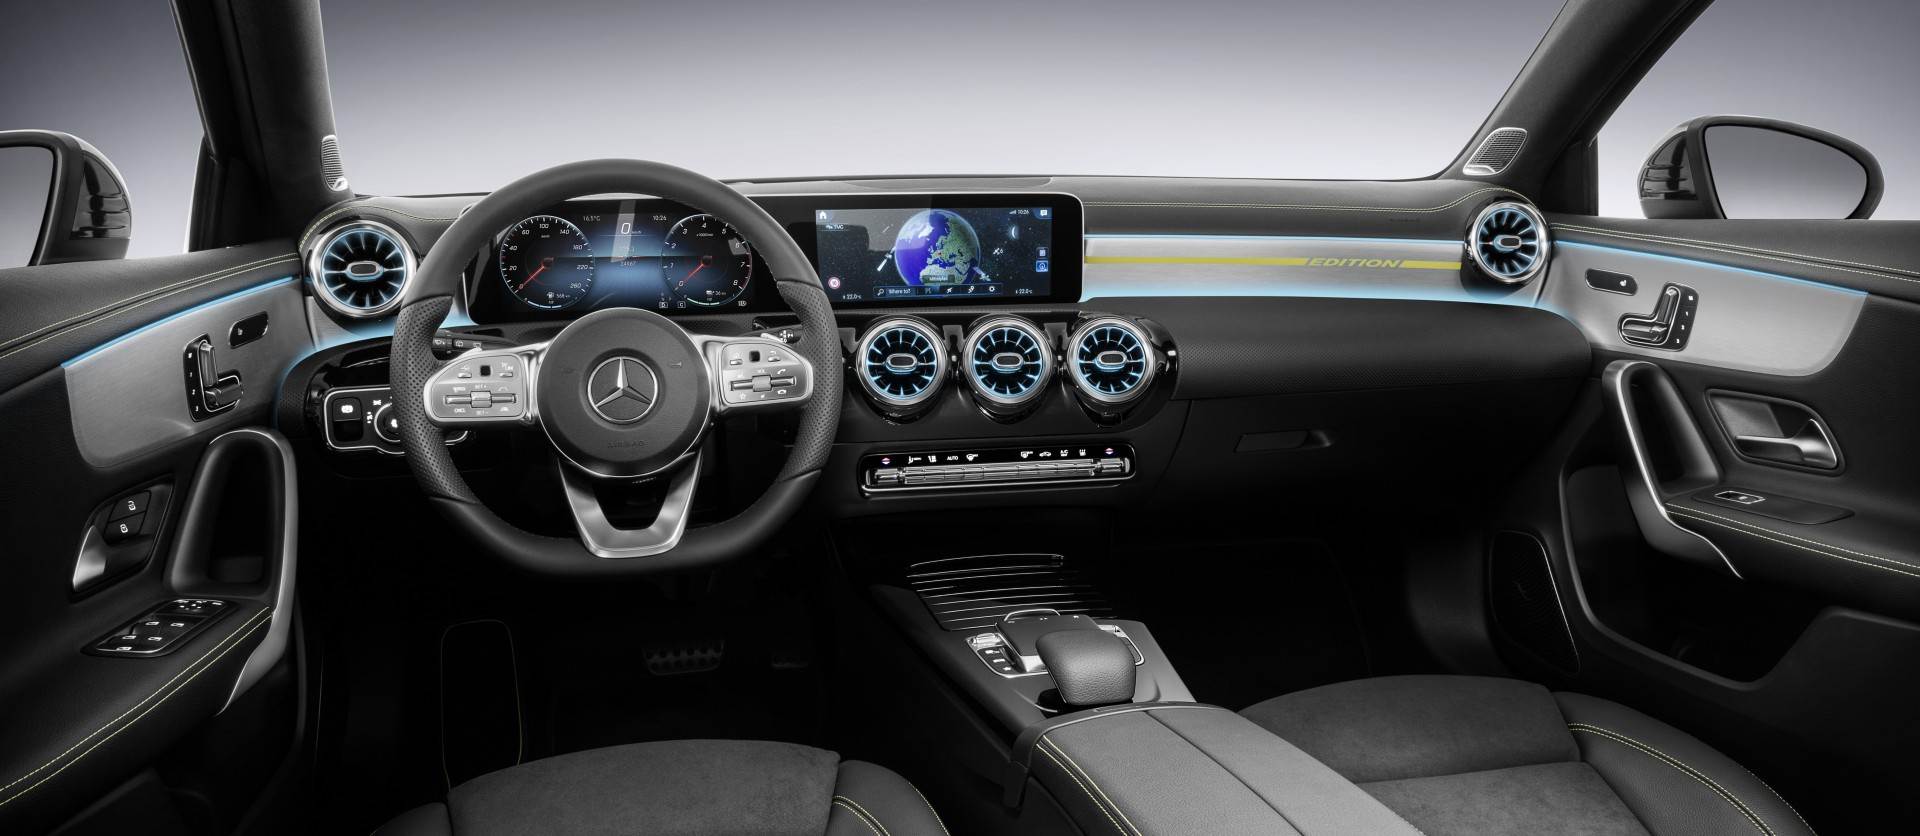 Tudo sobre: O interior do novo Mercedes-Benz Classe A